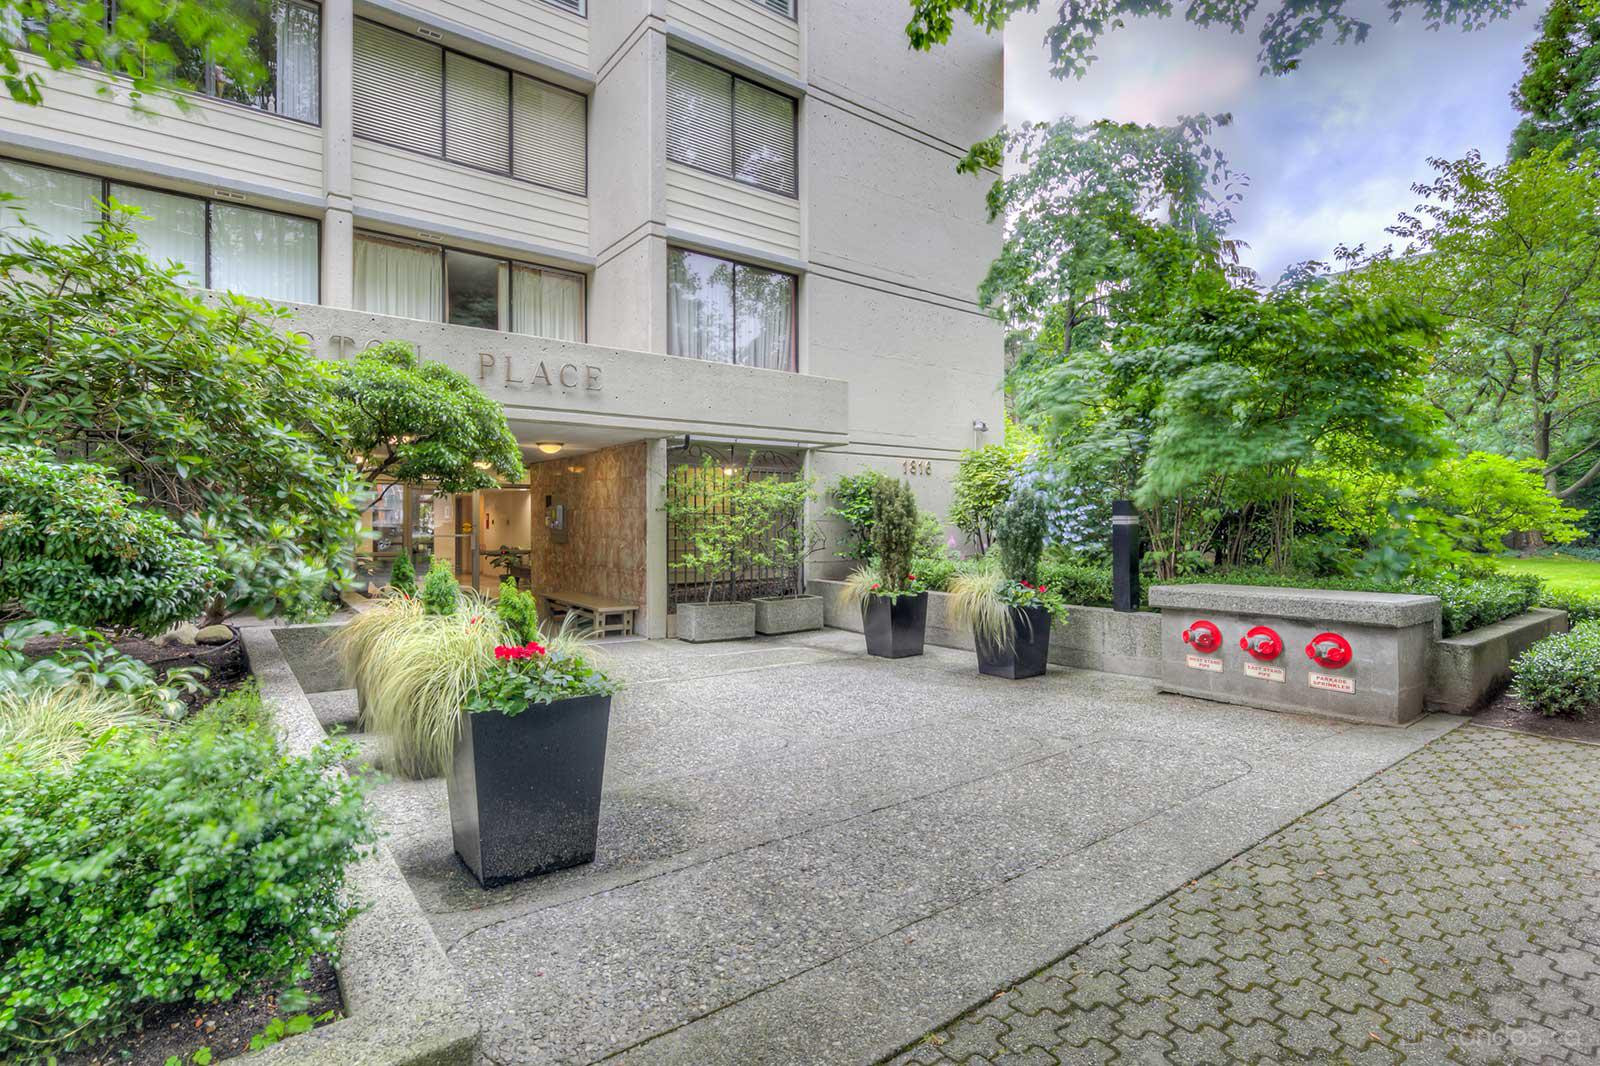 Huntington Place at 1816 Haro St, Vancouver 0